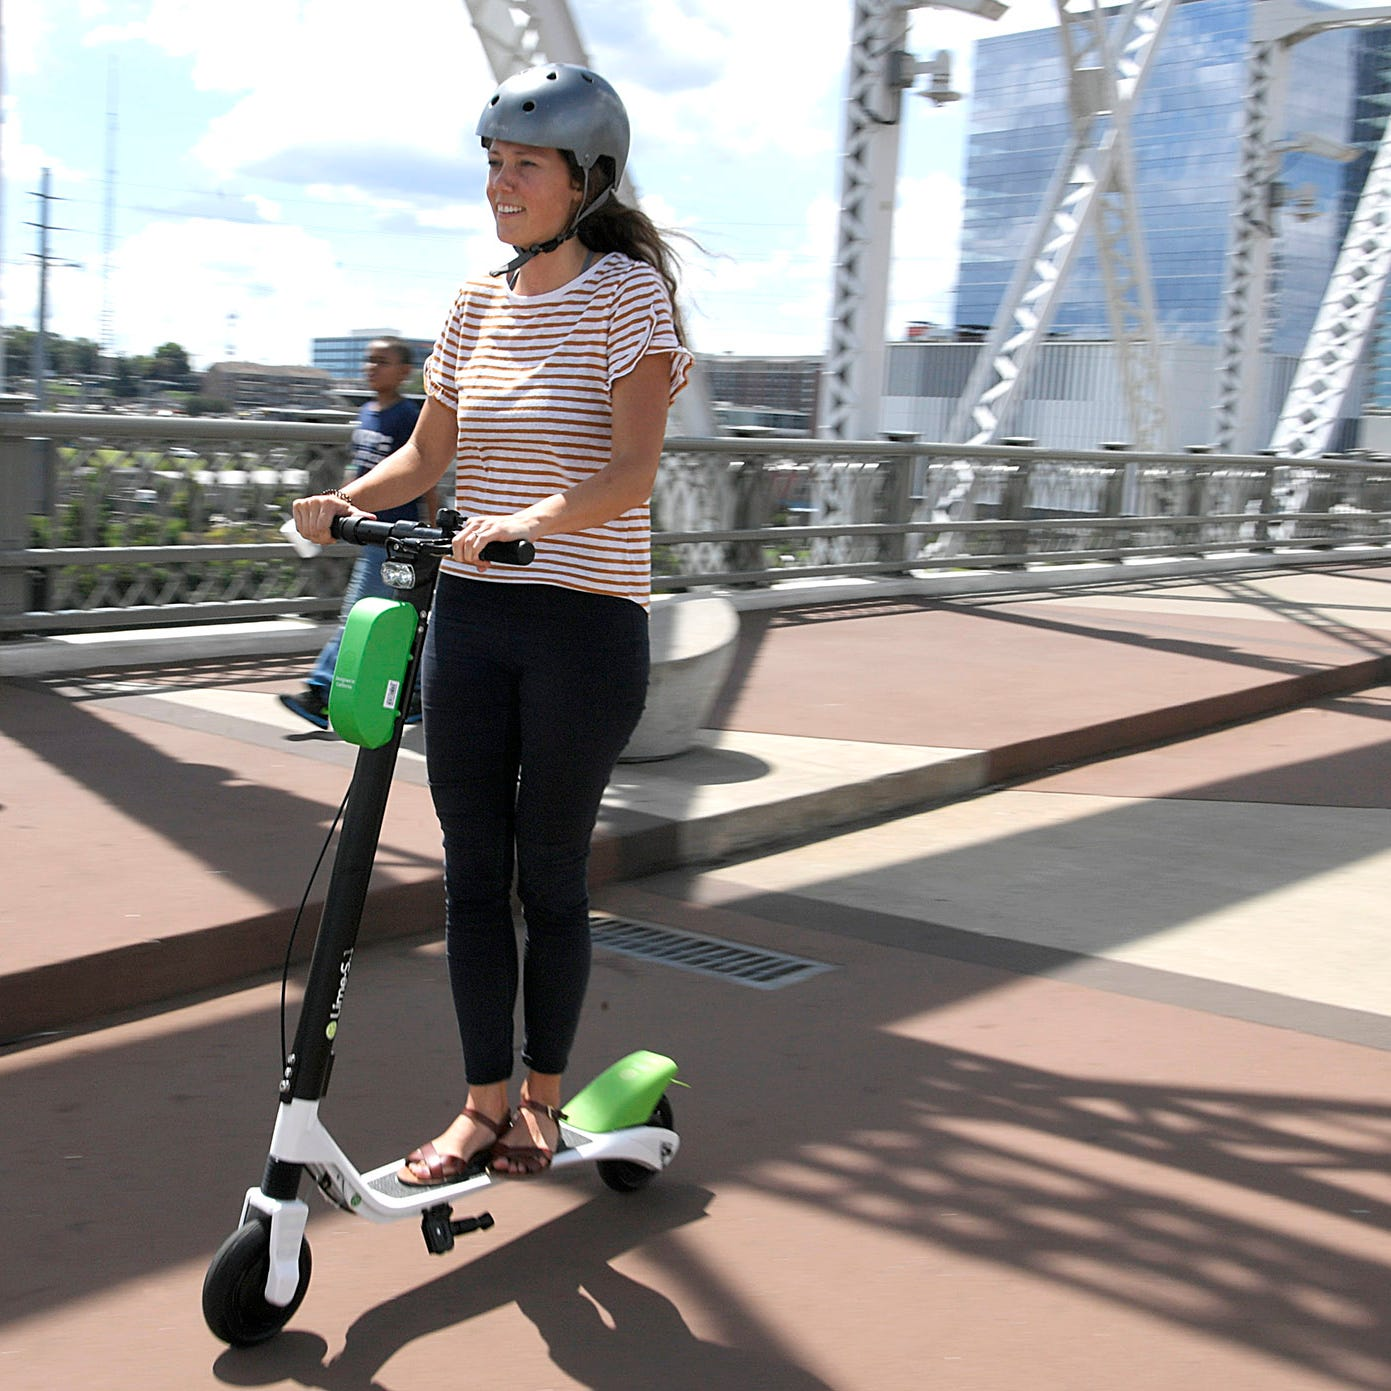 Our problem is not electric scooters like Lime, Bird, Lyft or Uber. It is Nashville's lagging infrastructure. | Plazas